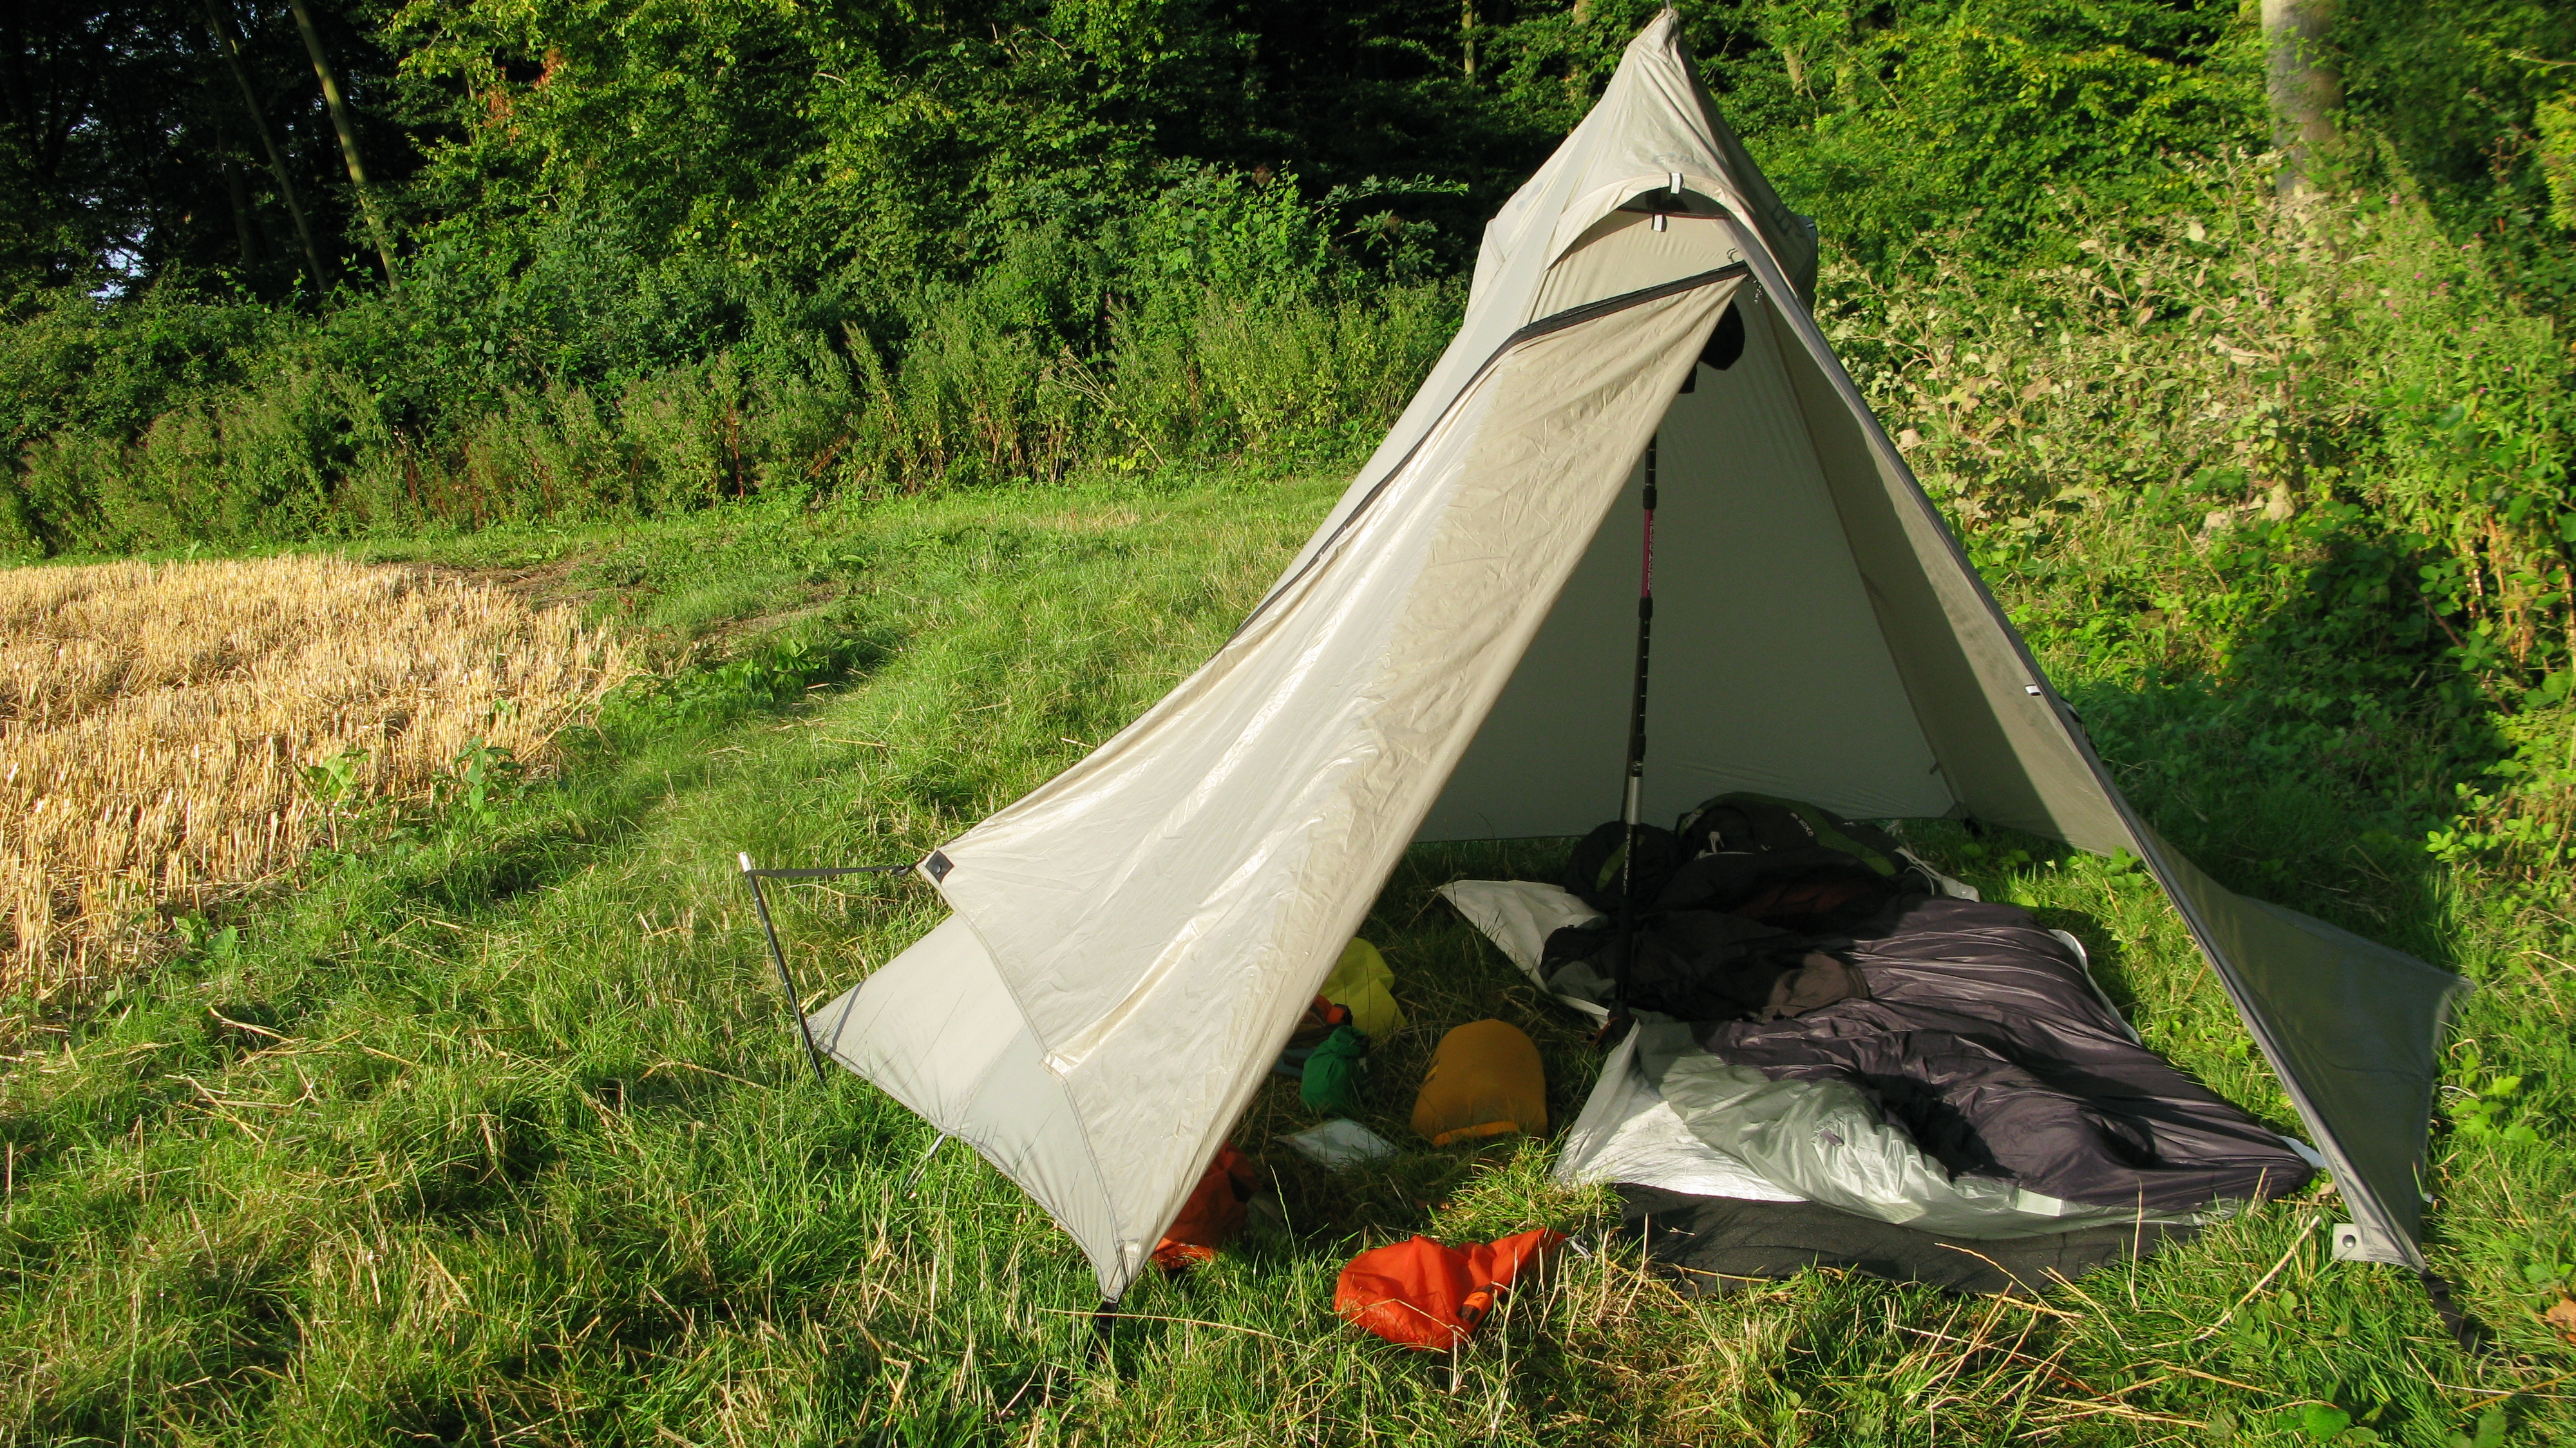 Wiki-Up SUL 3 used in tarptent configuration & Shelter | Three Points of the Compass